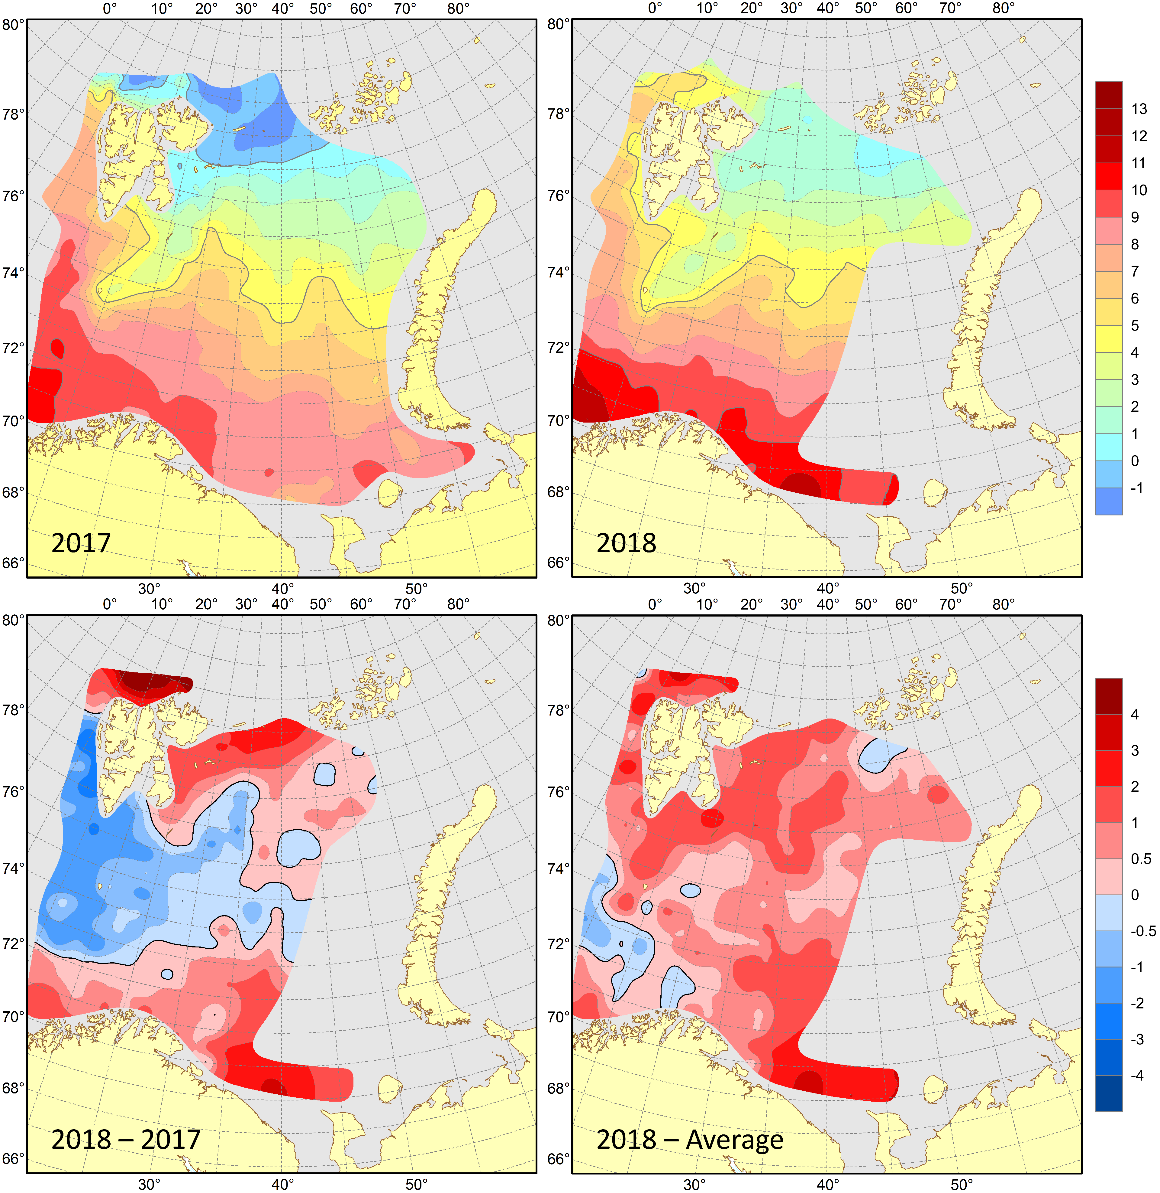 Figure 3.1.10. Surface temperatures (°C) in August–September 2017 (upper left) and 2018 (upper right), their differences between 2018 and 2017 (lower left, °C) and anomalies in August–September 2018 (lower right, °C).